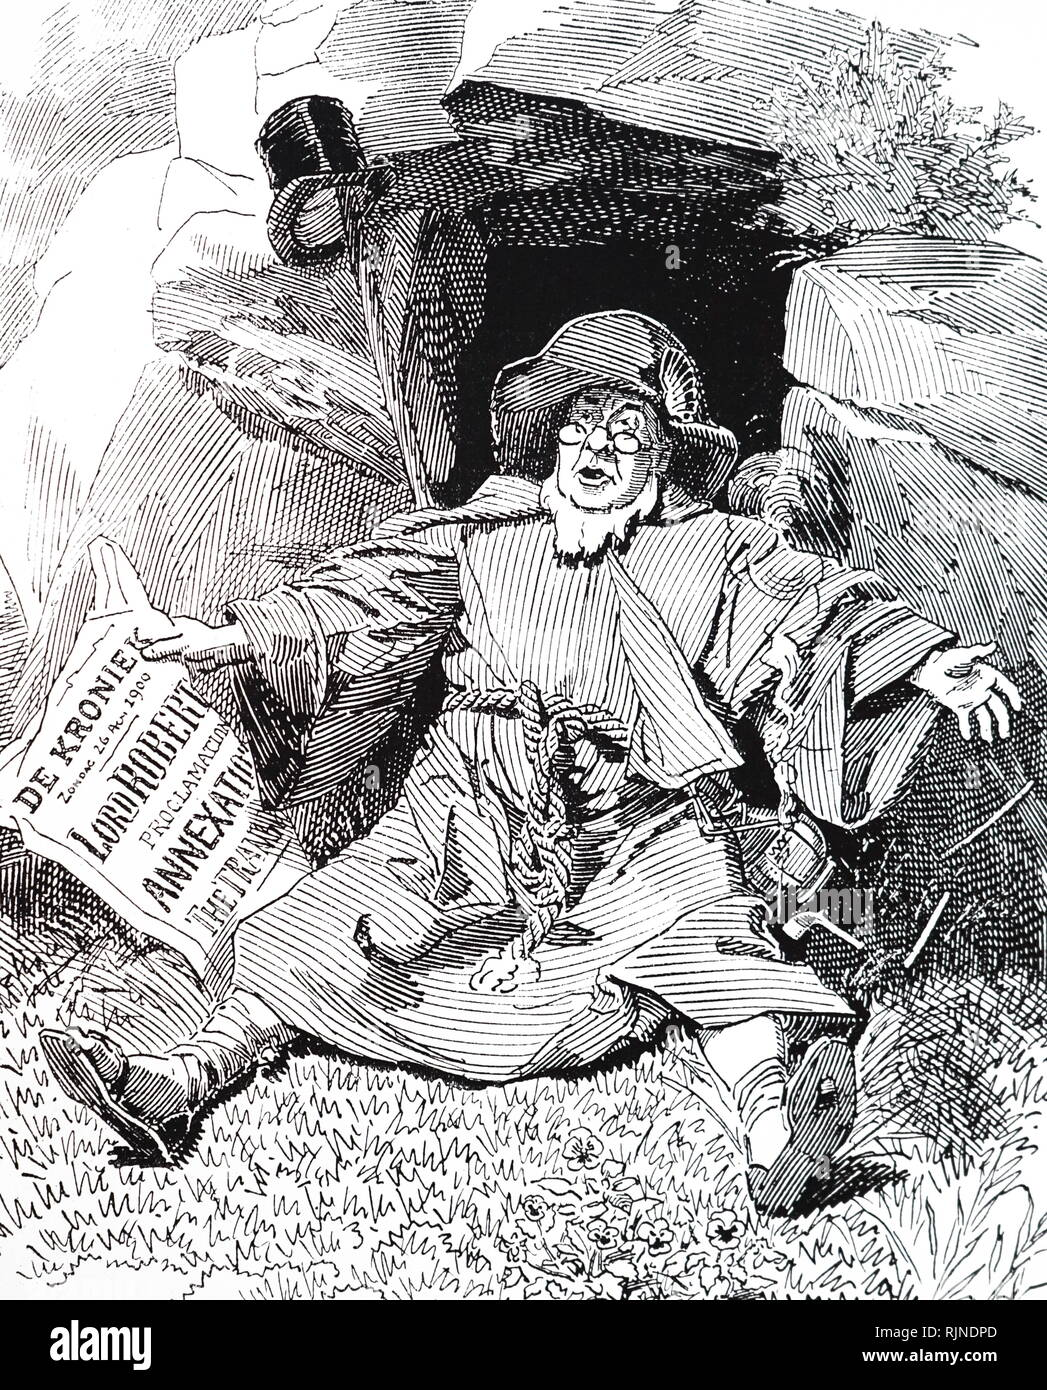 A cartoon depicting Paul Kruger (1825-1904) an Afrikaner farmer, soldier and statesman. After the outbreak of the Boer War, Kruger was too old to cope with guerrilla warfare and went to live in Holland until the end of the War. Illustrated by Linley Sambourne. - Stock Image